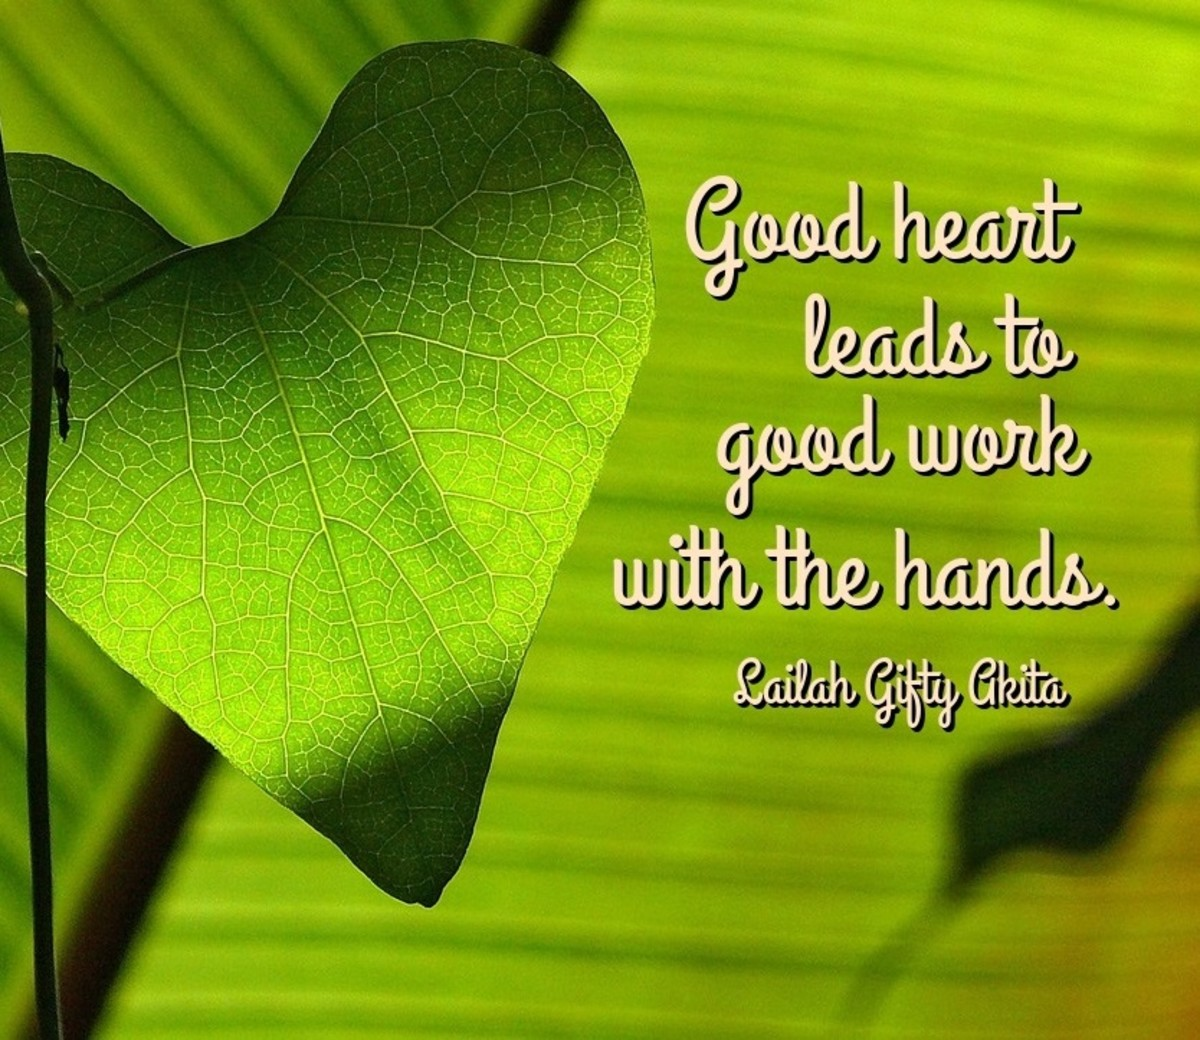 Good heart leads to good work with the hands.